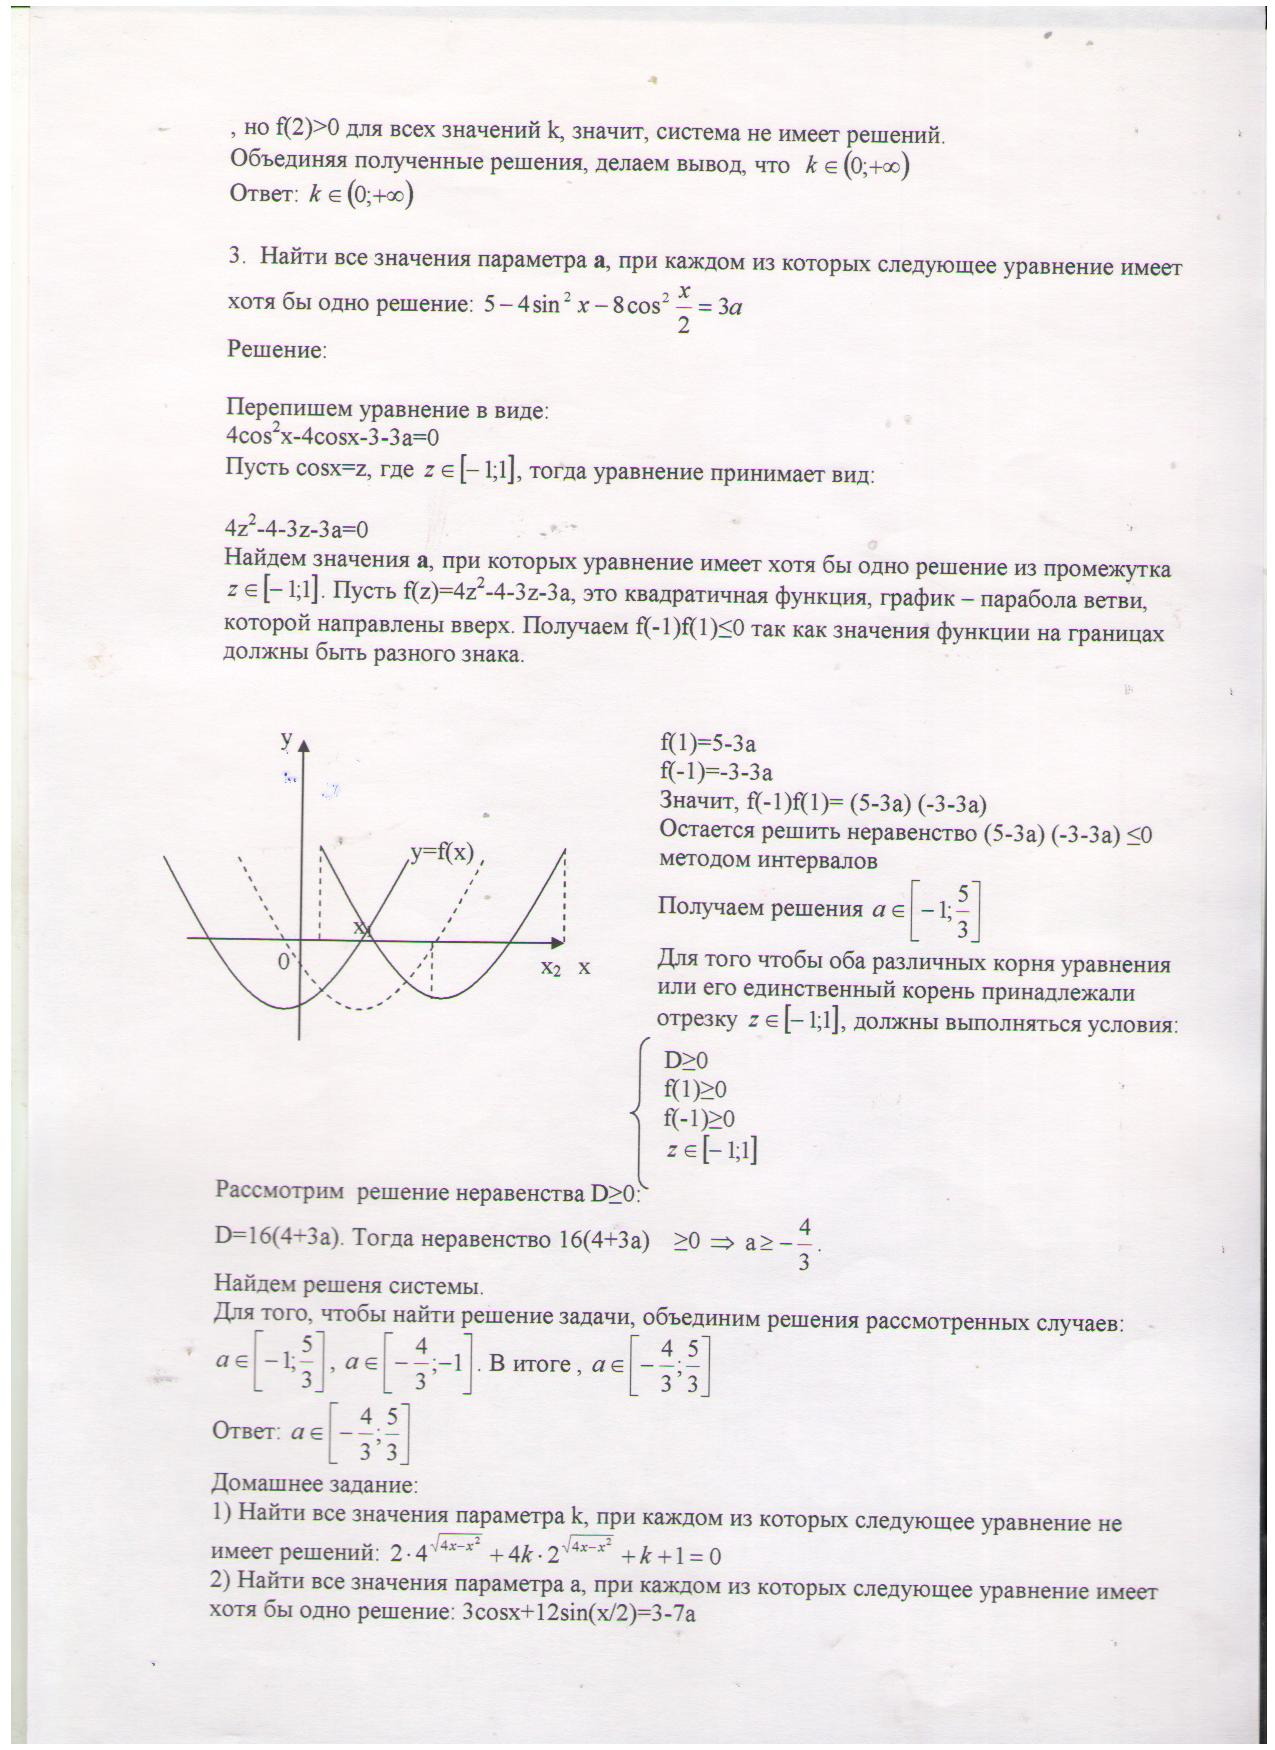 C:\Documents and Settings\23\Рабочий стол\урок\второй\4.jpg